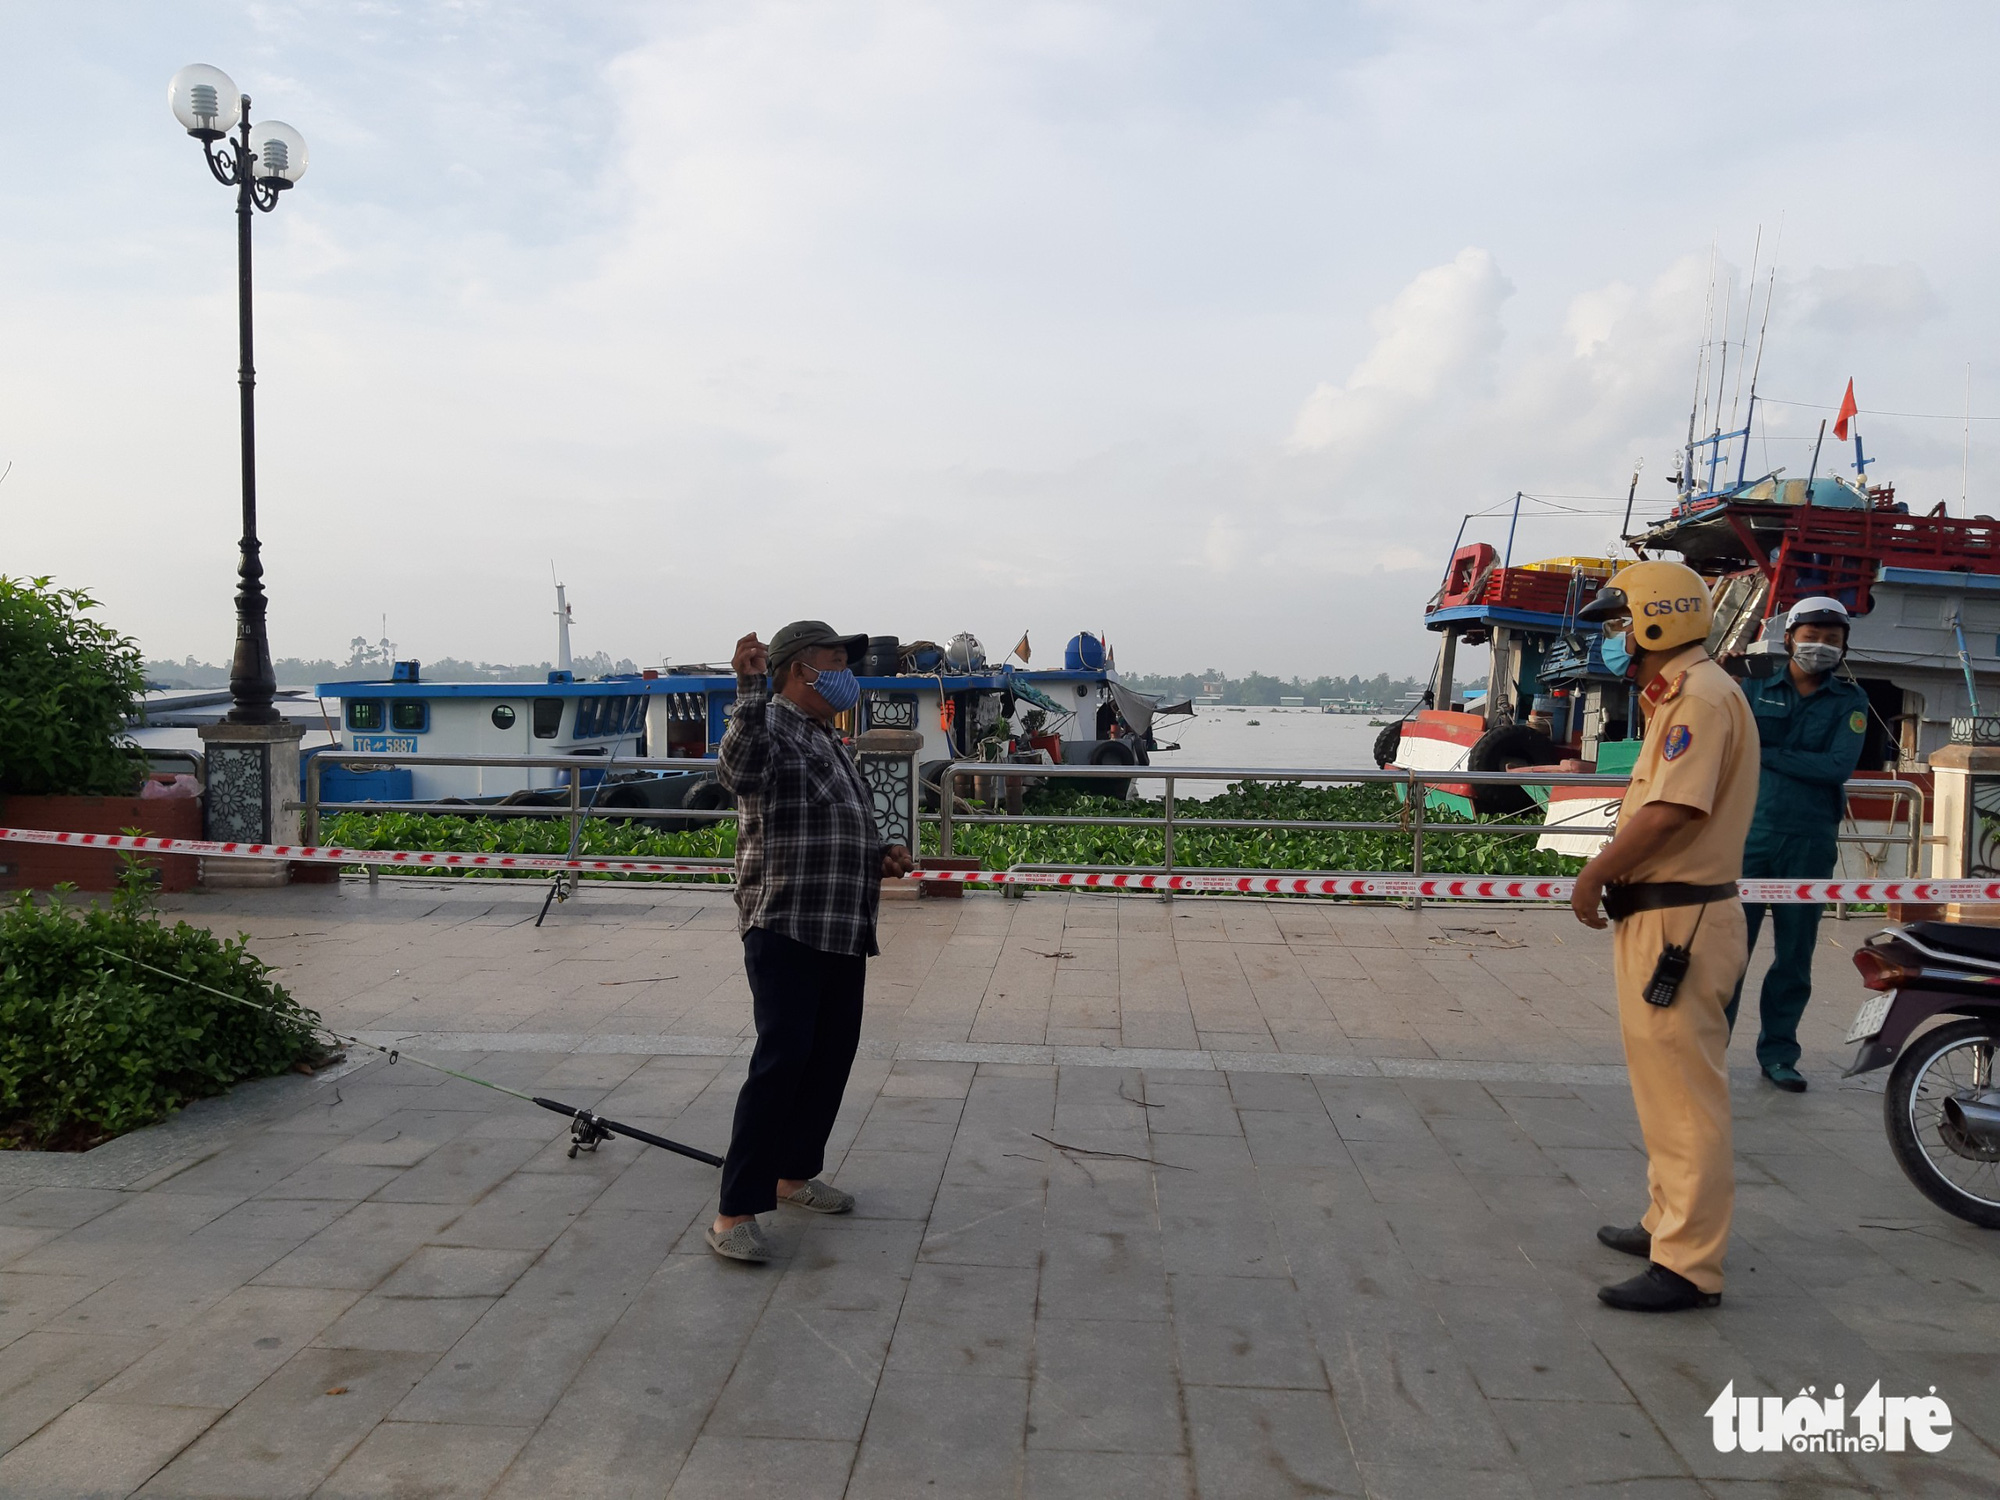 Vietnamese man jumps into river to avoid penalty for exercising outdoors against COVID-19 restrictions